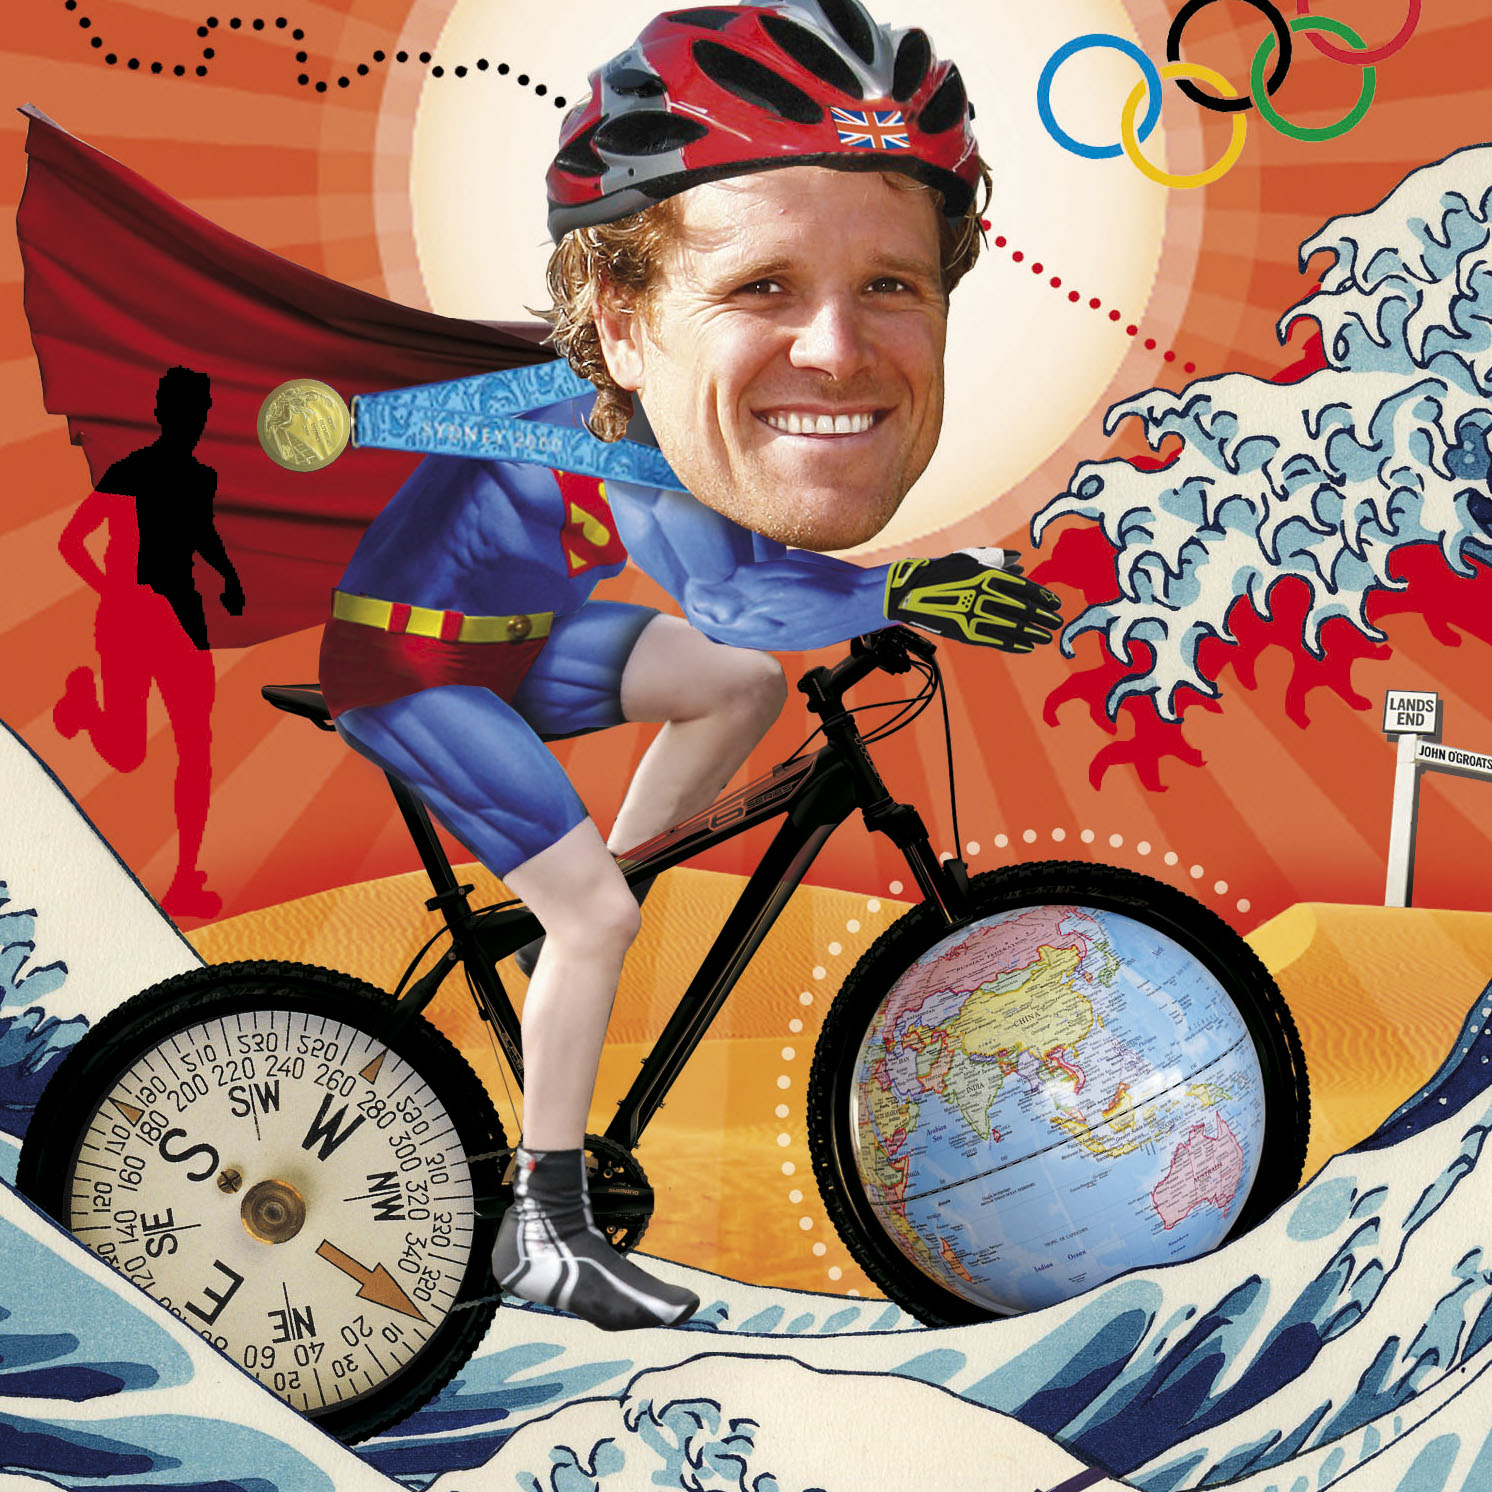 James Cracknell, collage illustration